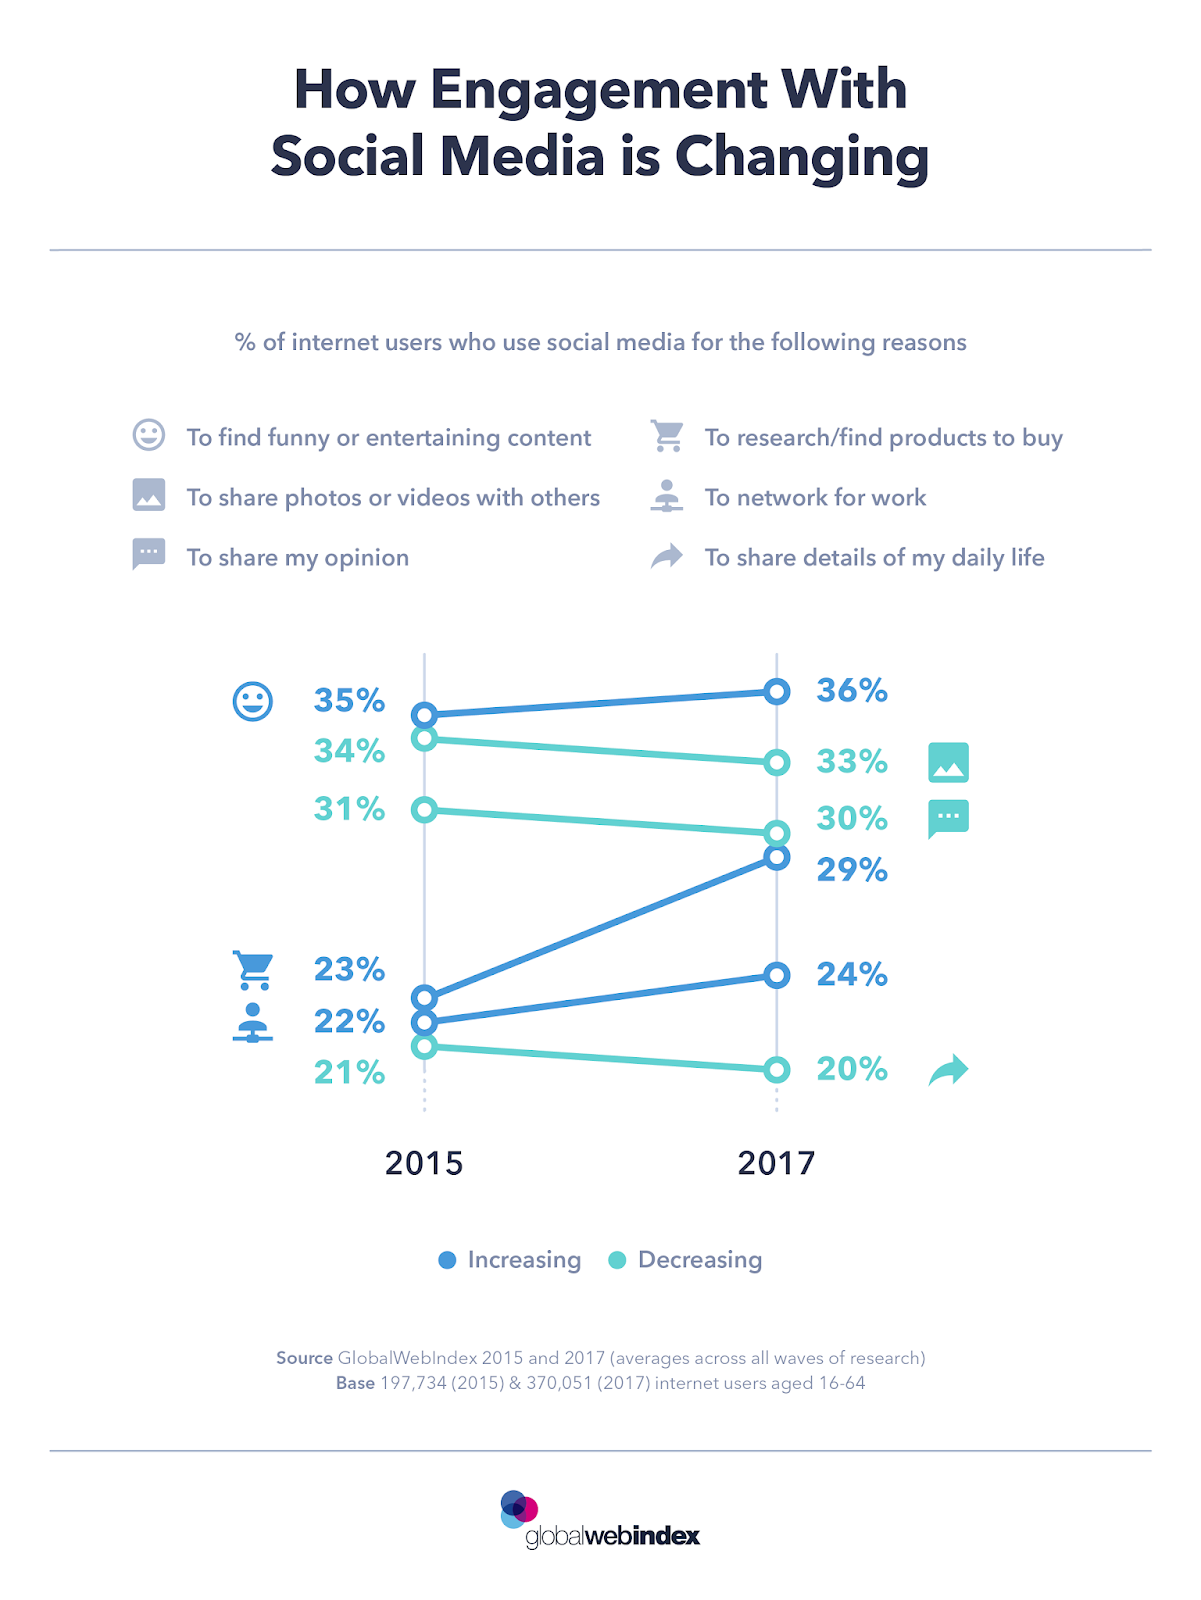 How Engagement With Social Media is Changing - #infographic